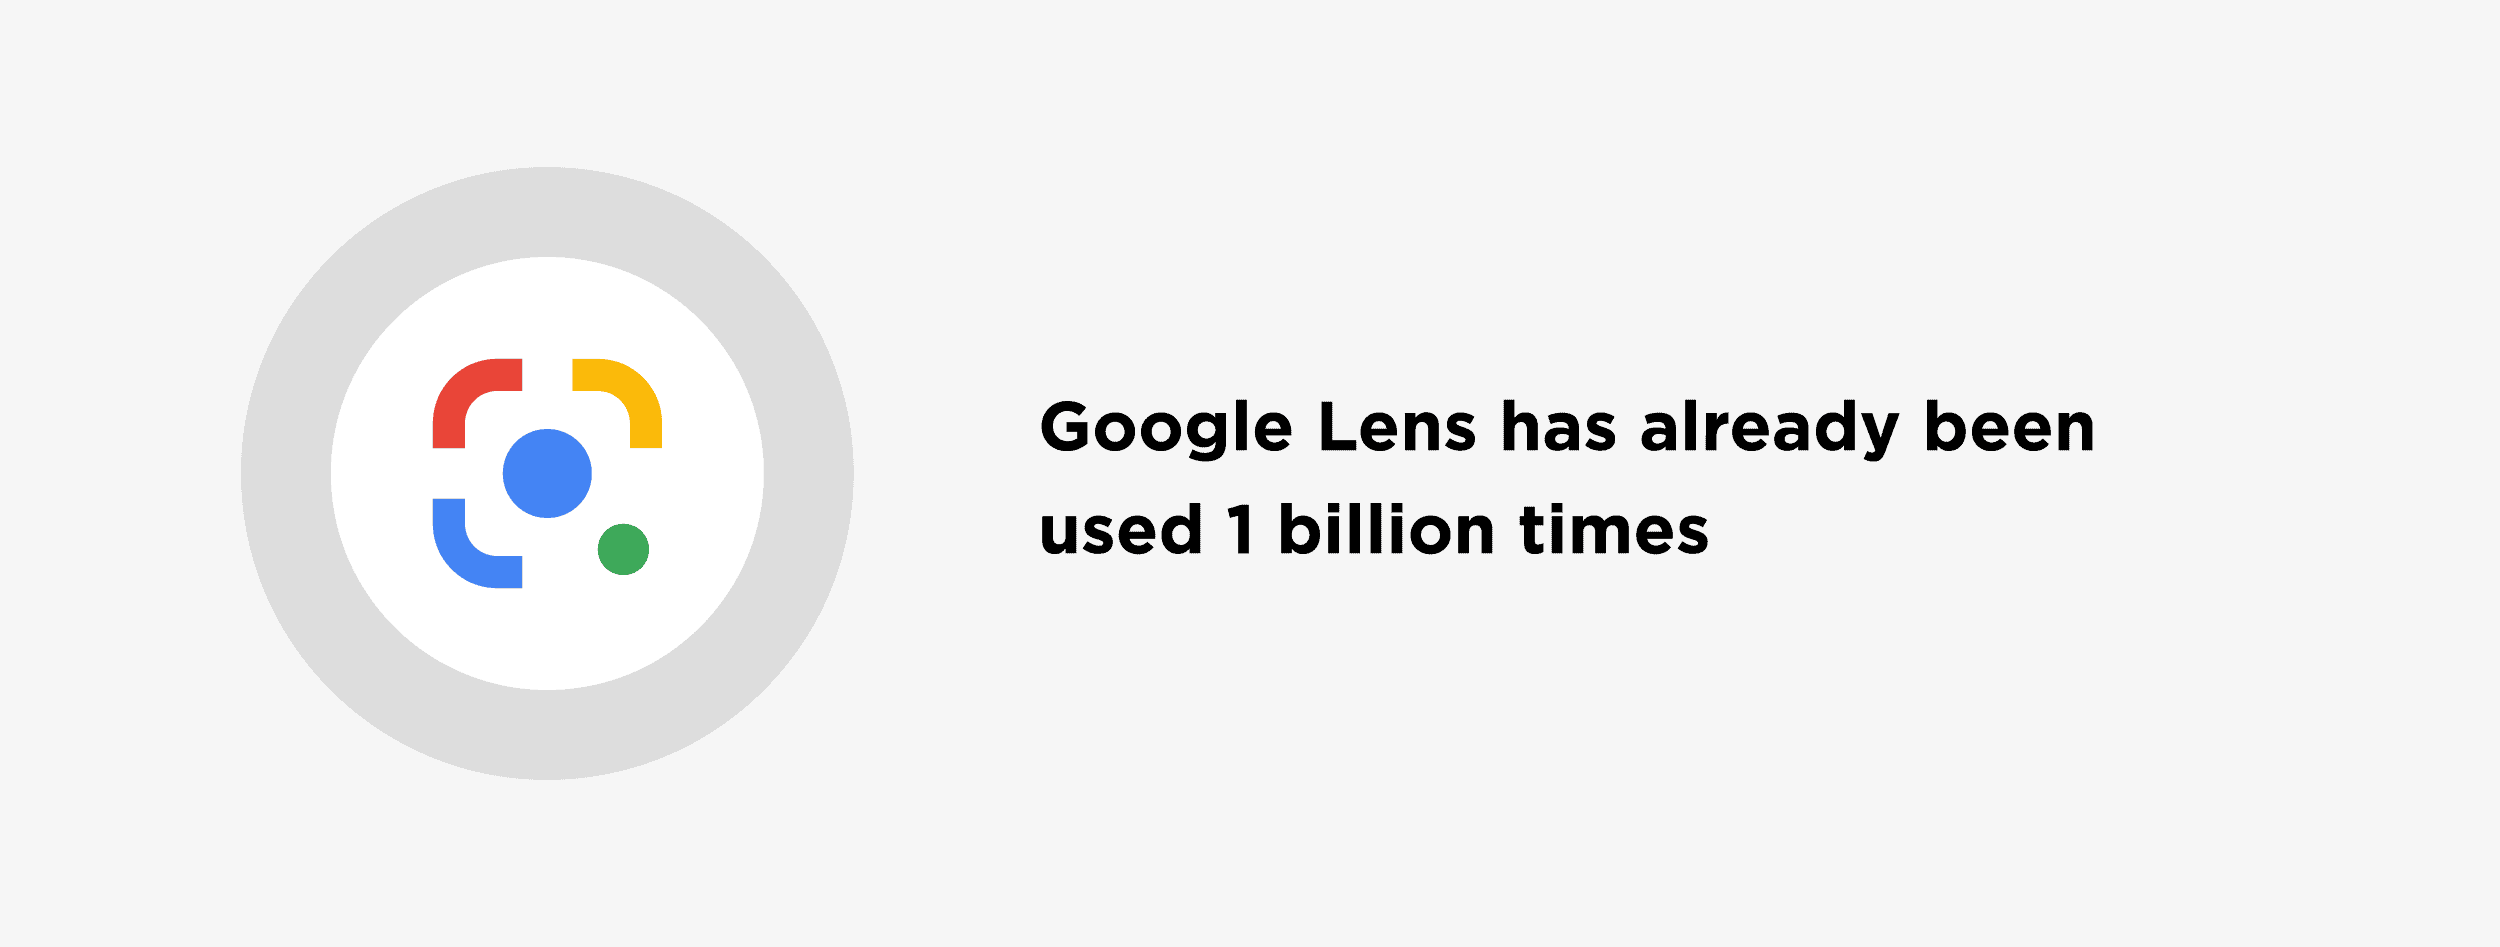 Google Lens has already been used 1 billion times